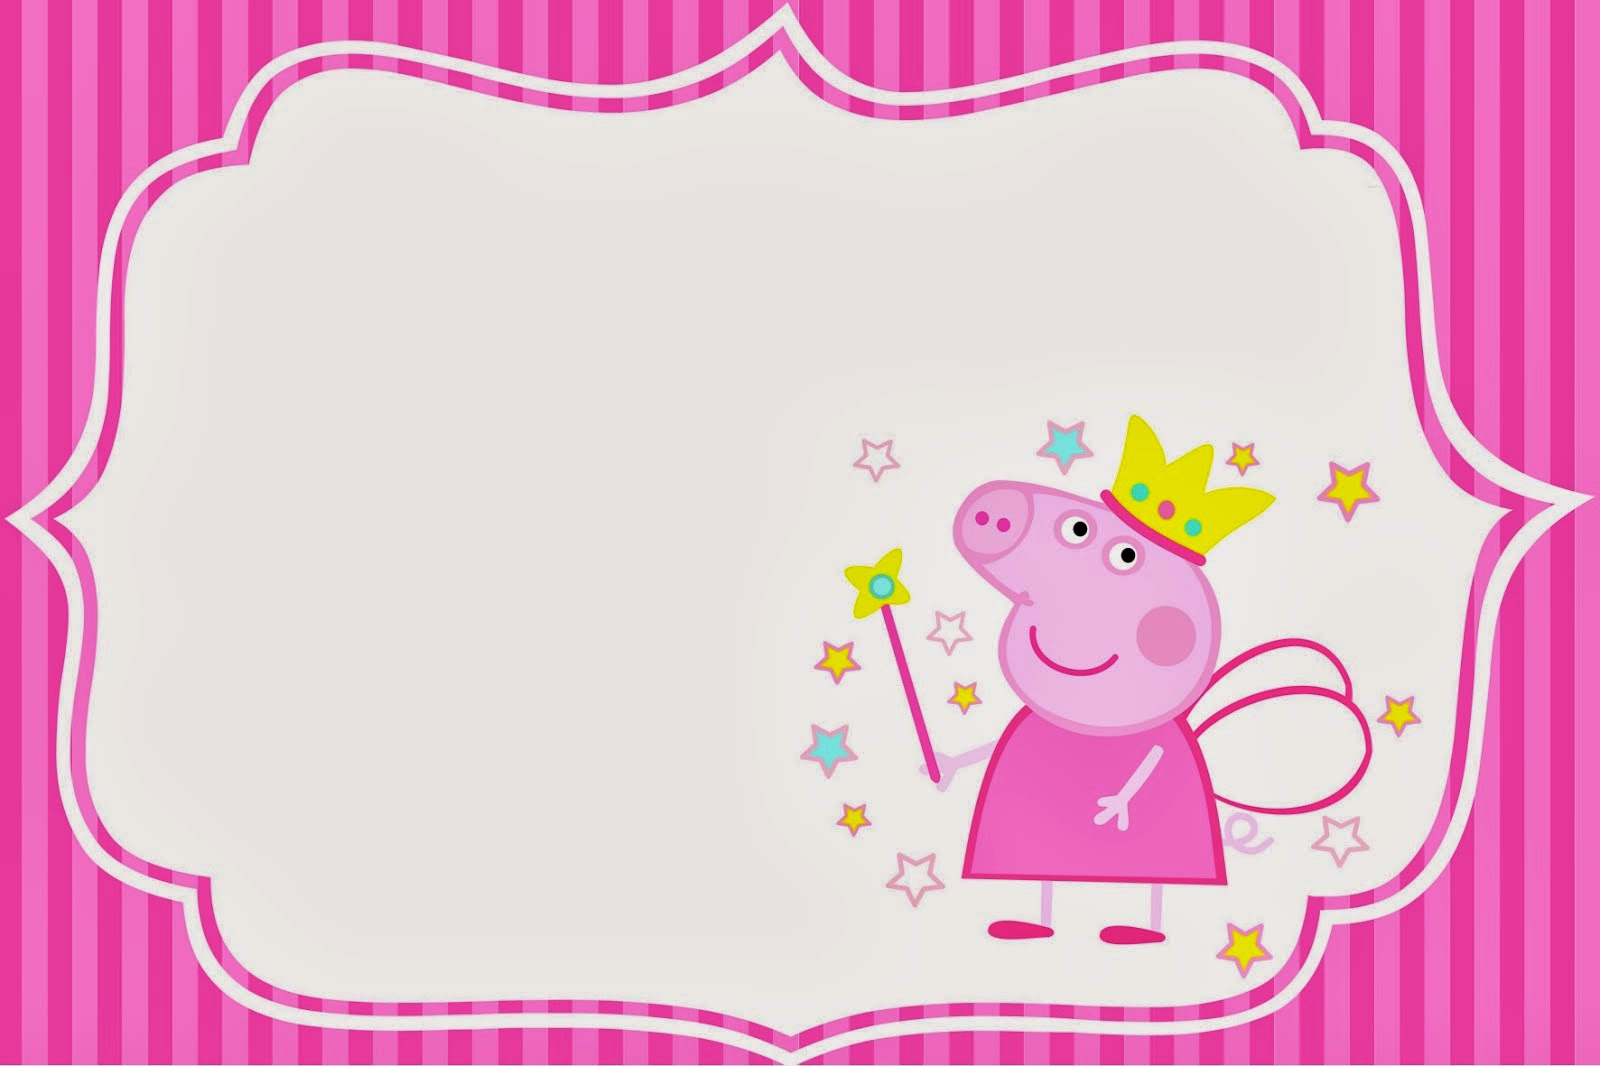 Peppa Pig Birthday Invitation Beautiful Peppa Pig Fairy Invitations and Free Party Printables